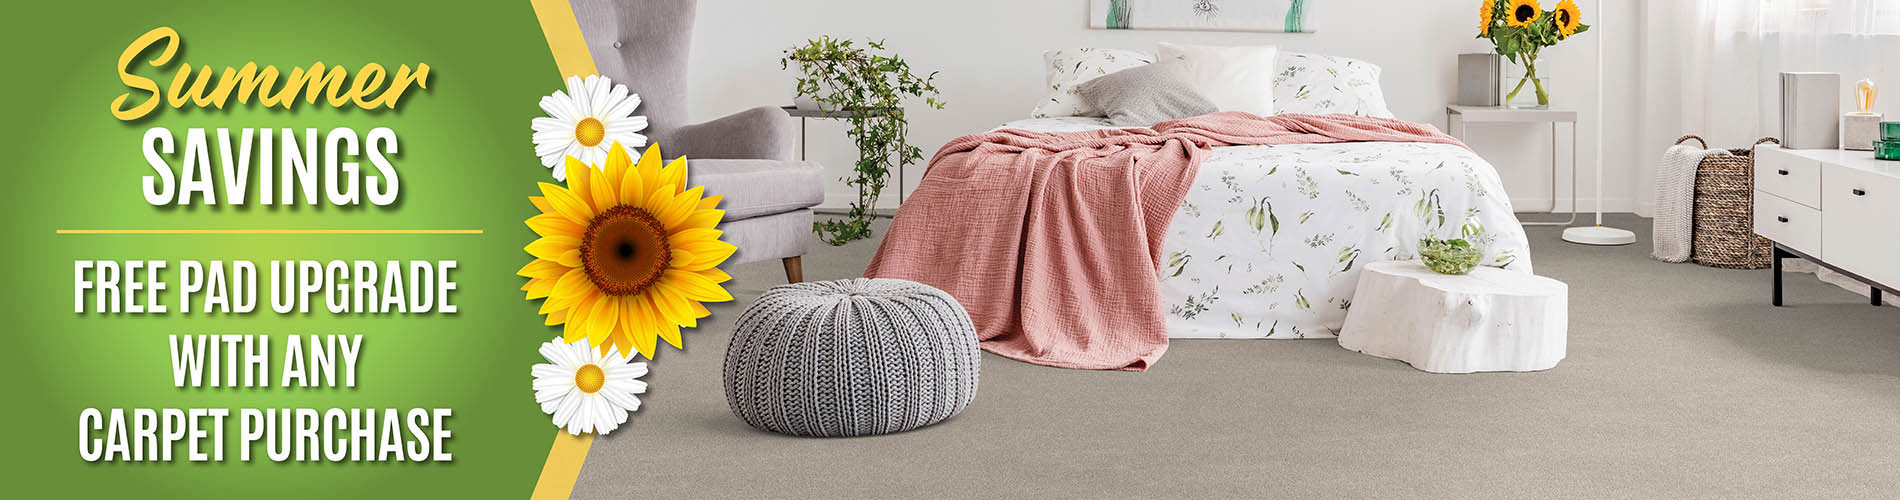 Free Carpet pad upgrade during our summer sale at West Carpets in Rahway